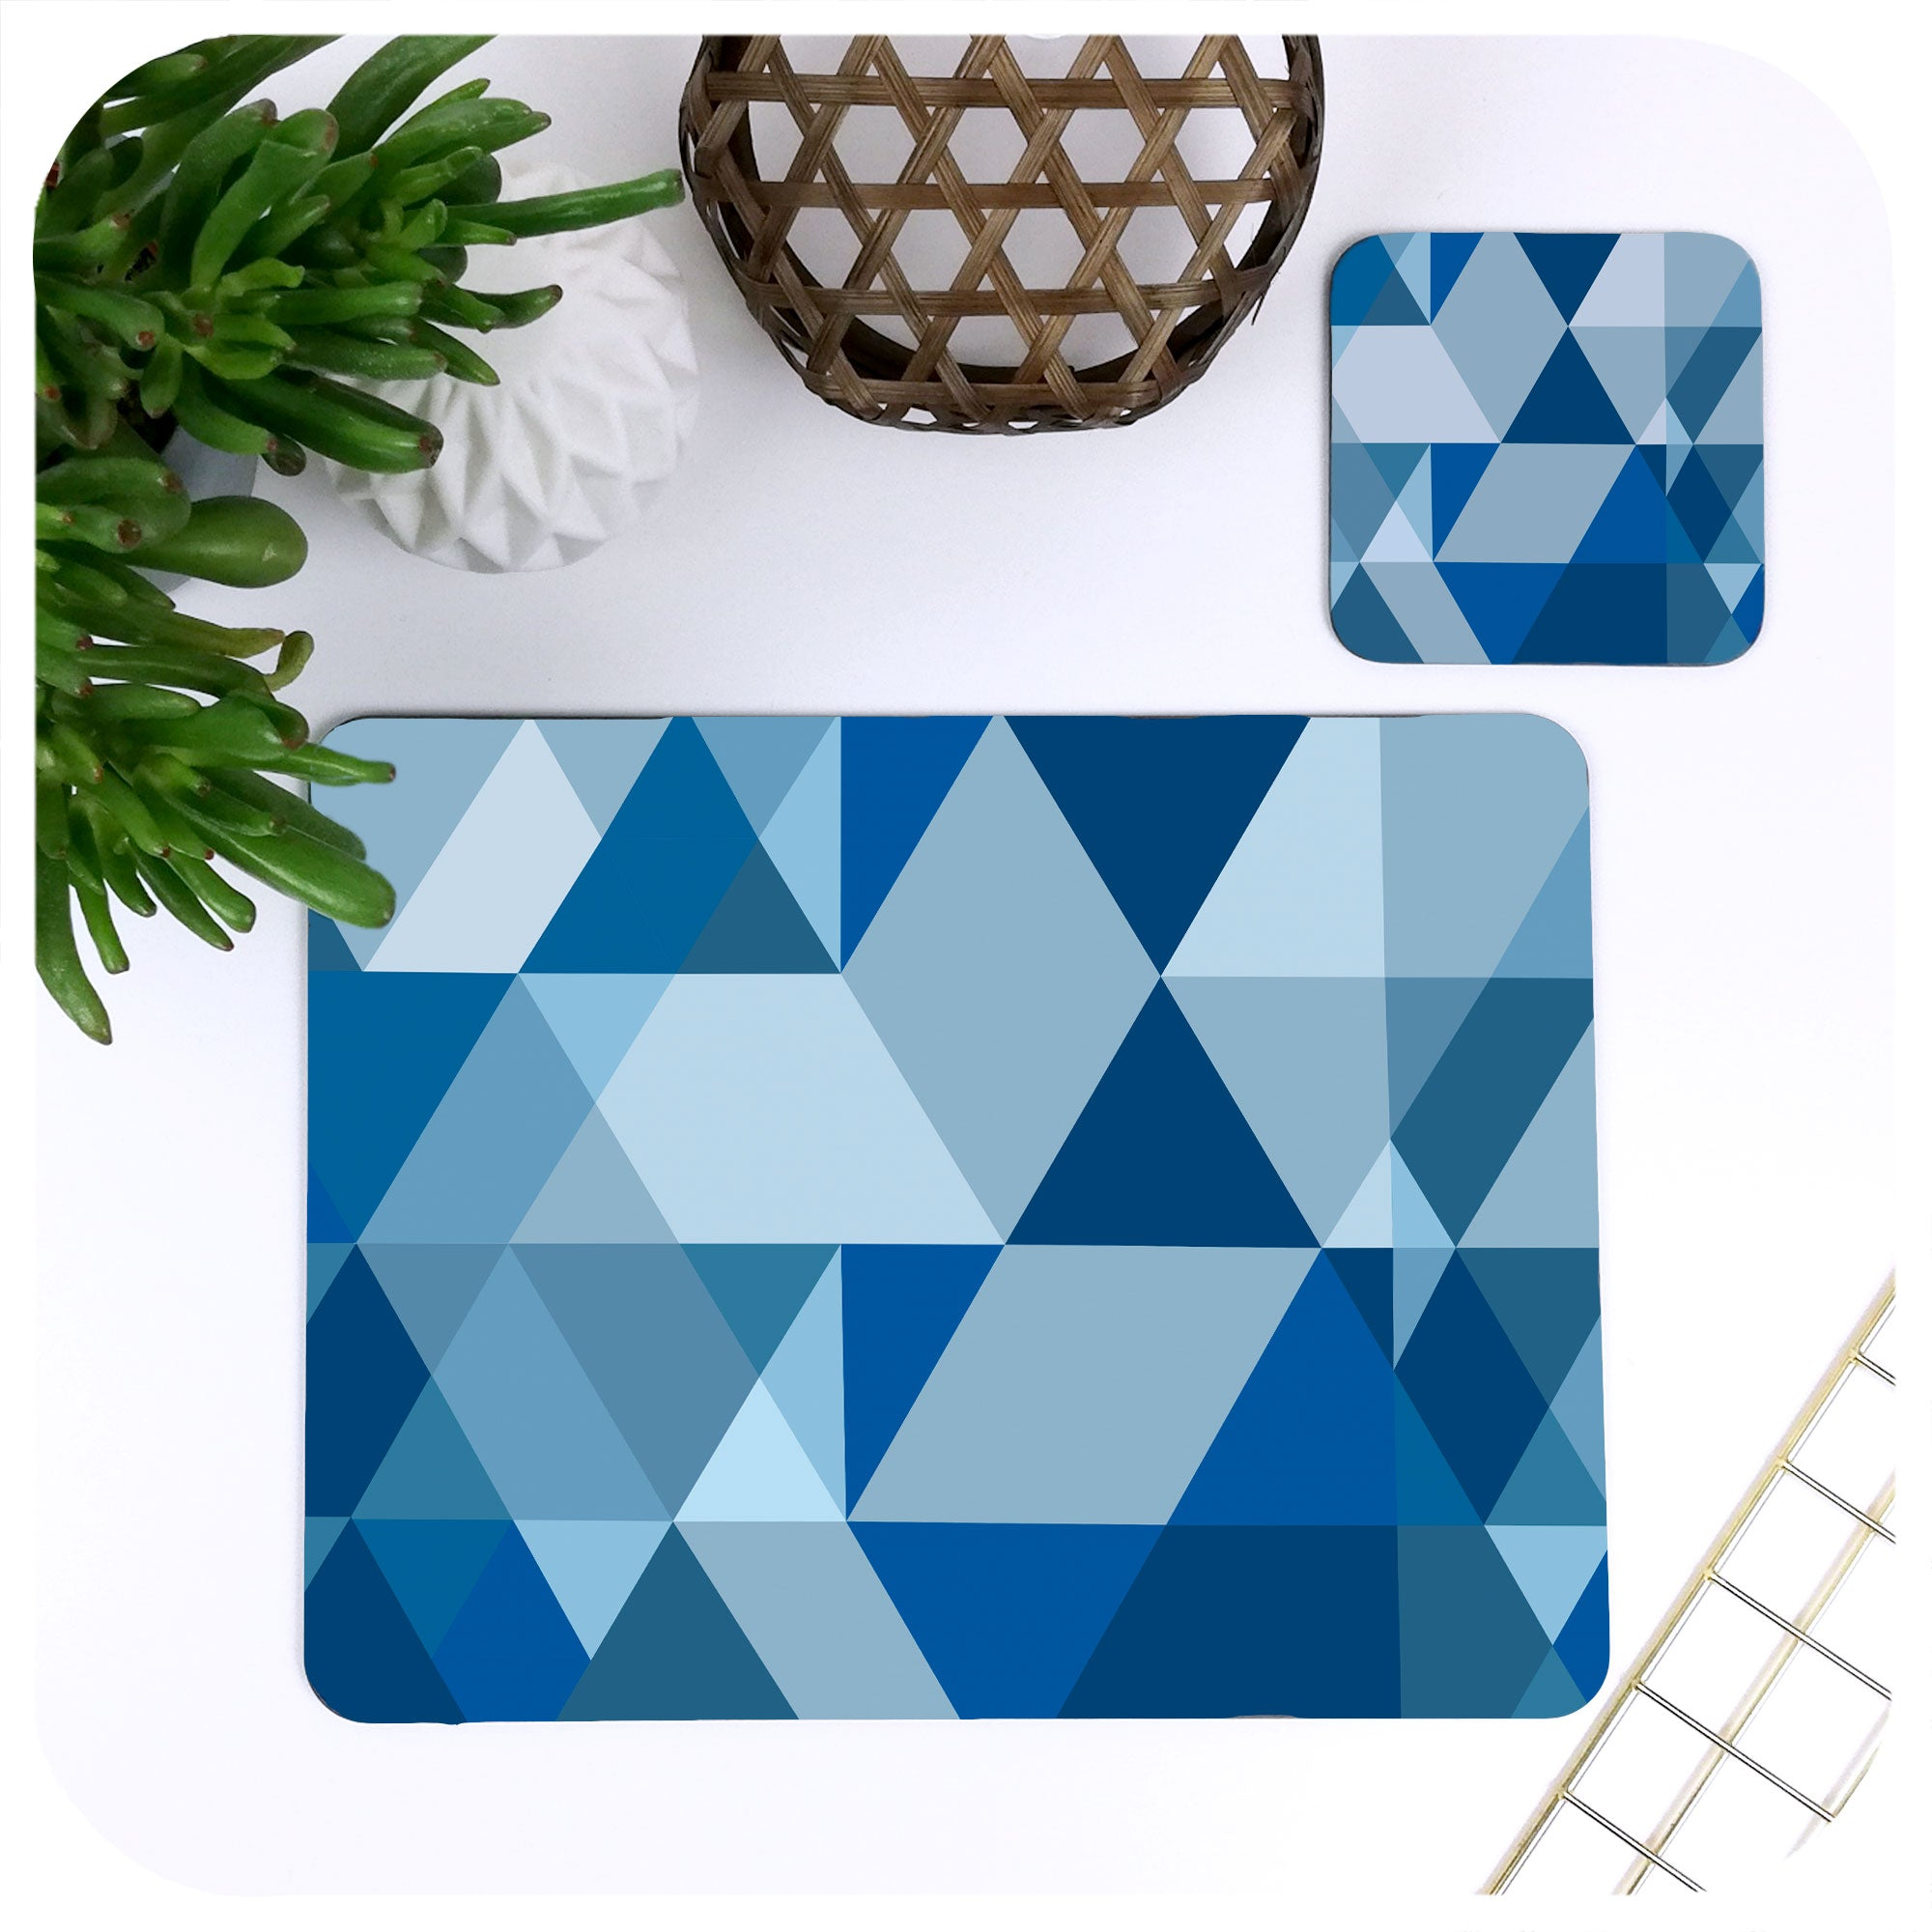 Scandinavian Geometric Tableware in Blue, one placemat and matching coaster | The Inkabilly Emporium